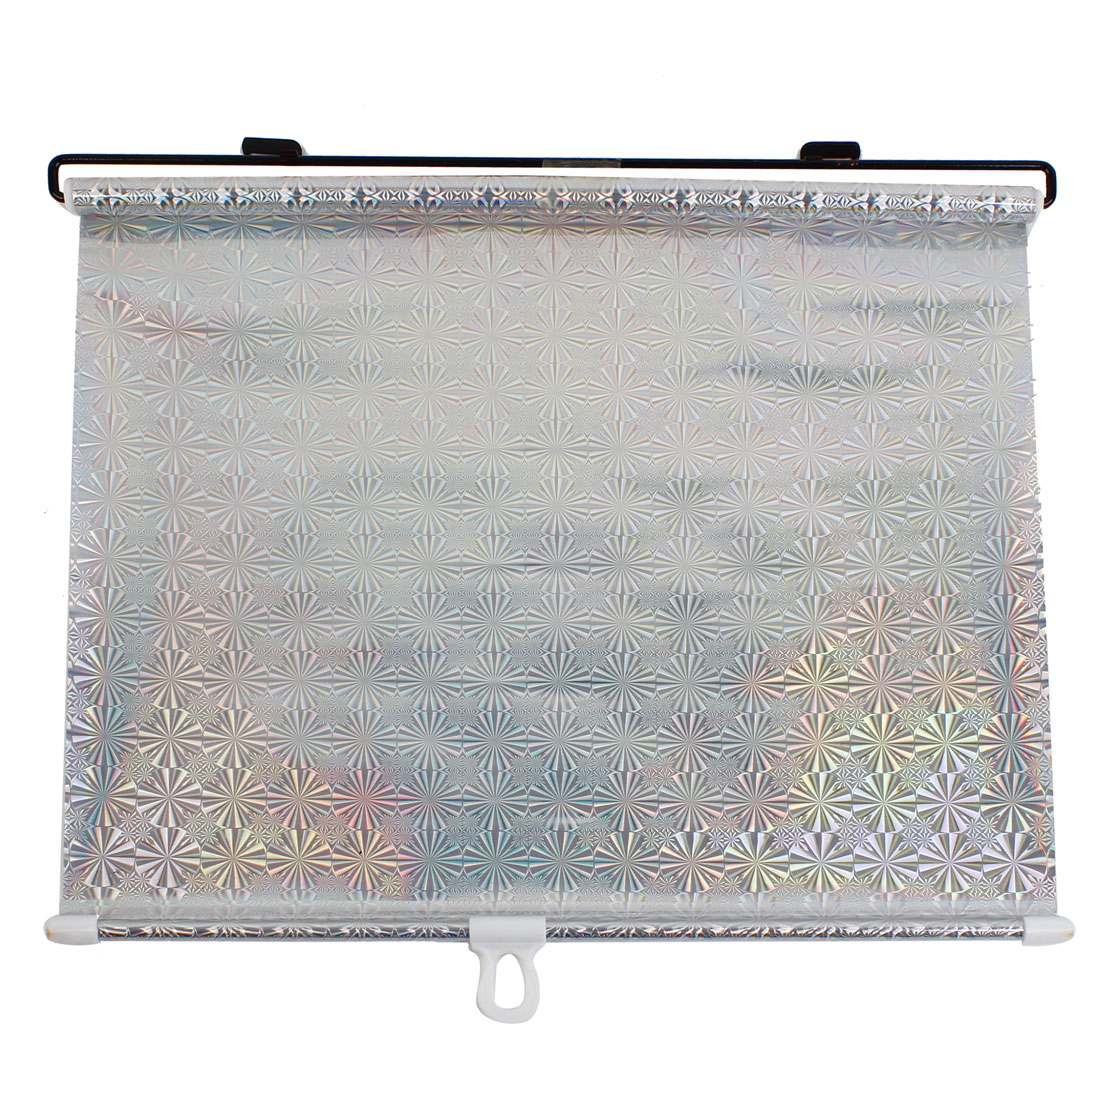 Silver Tone 125 x 50cm Vehicle Car Window Sun Shield Shade Visor